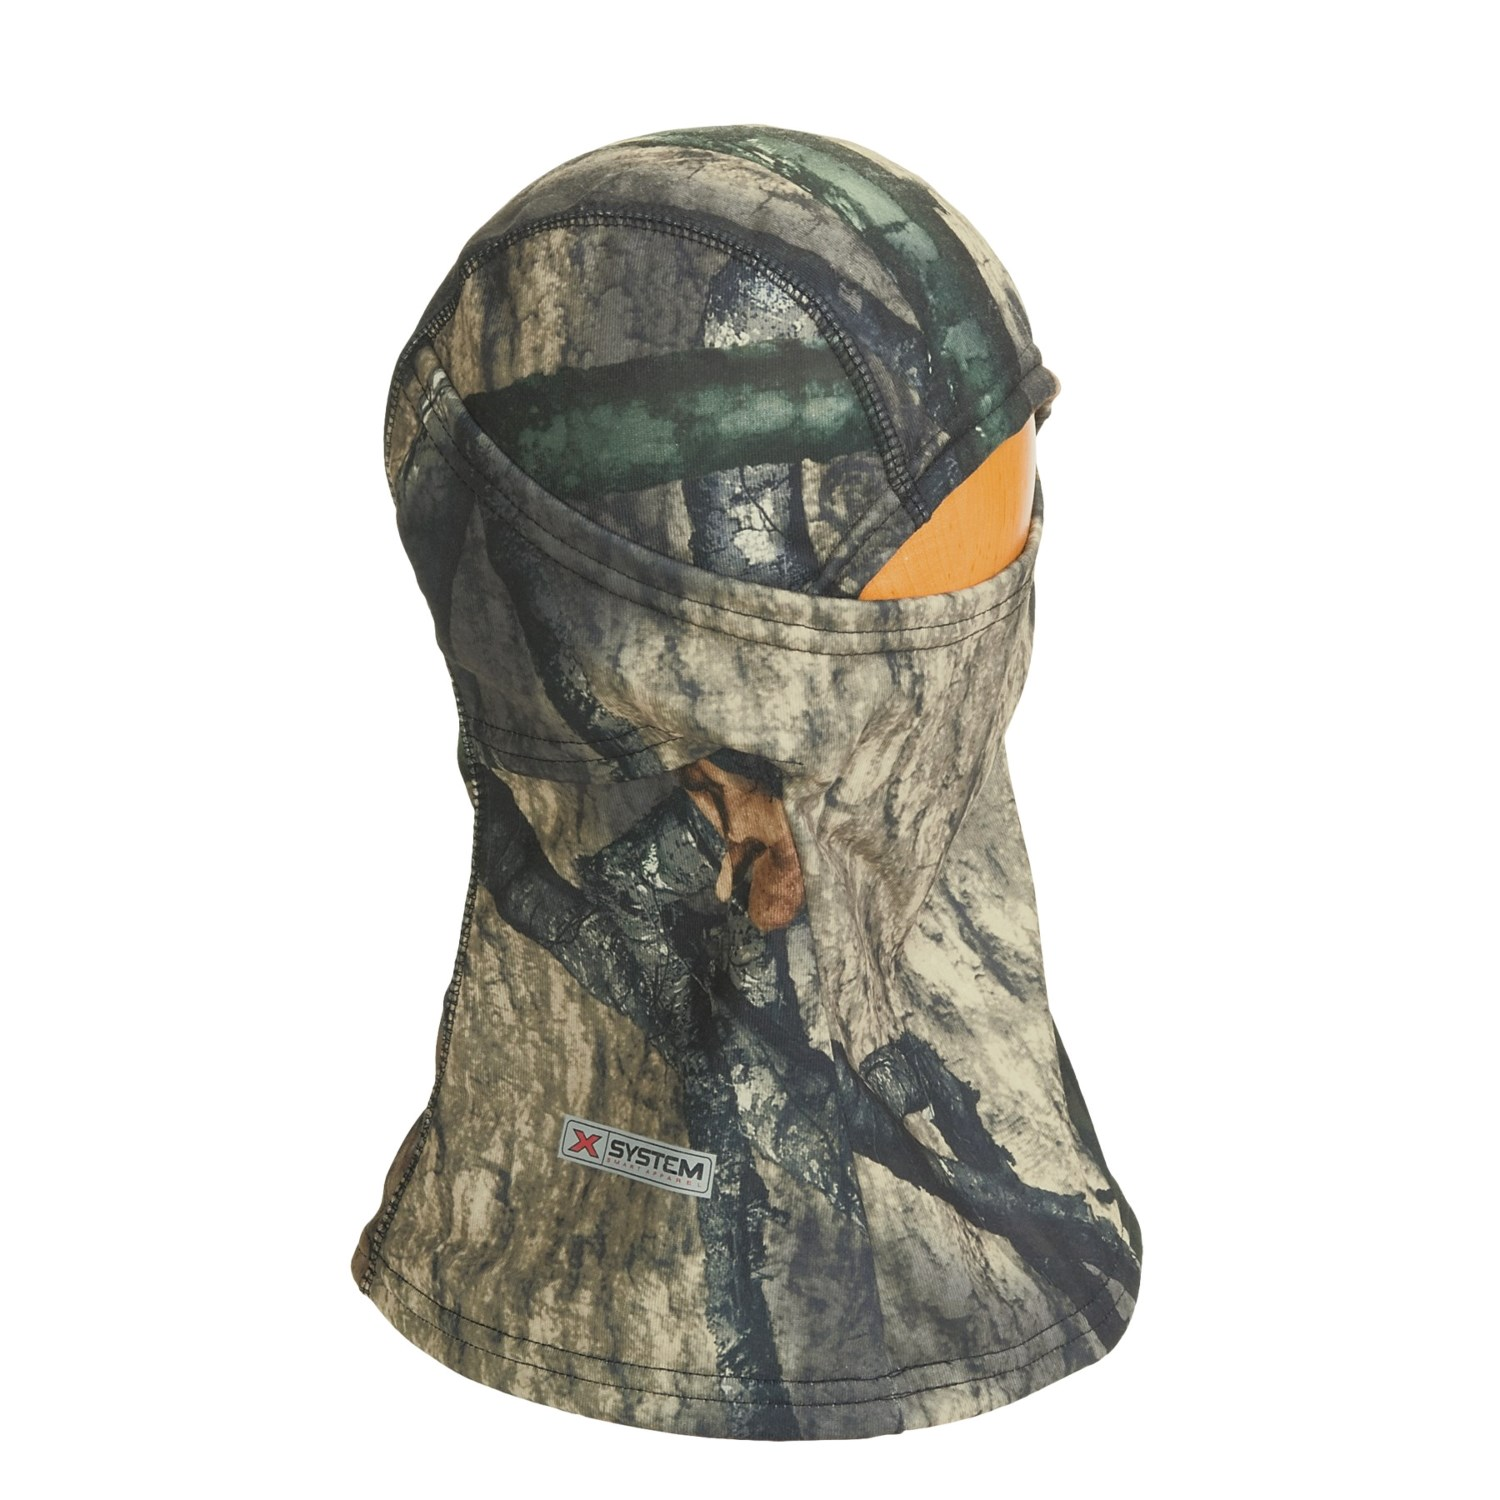 X System Camo Balaclava For Men 2822y Save 40